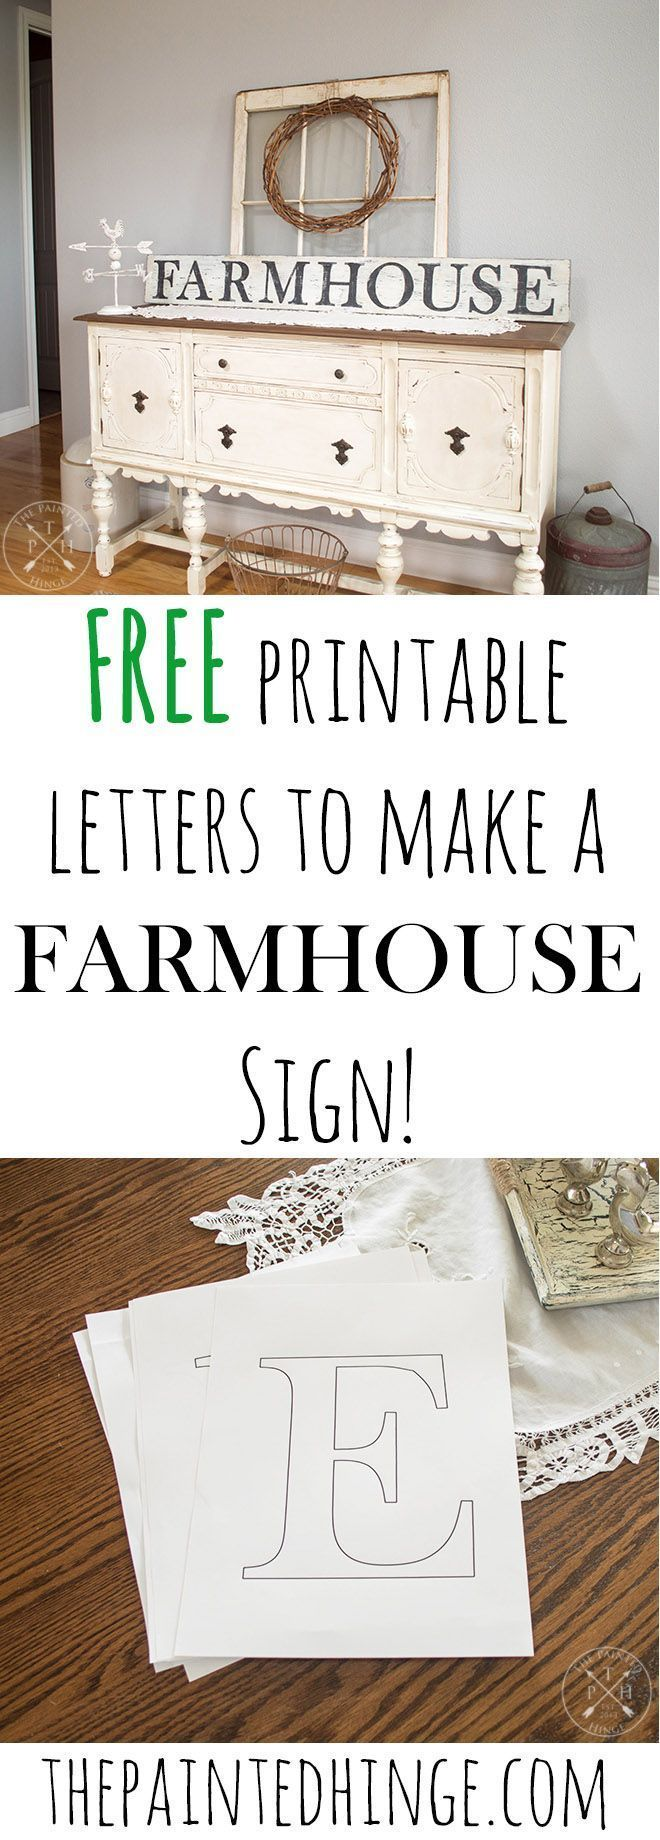 Free Printable Letters To Make A Farmhouse Sign Free Printable Letters Diy Signs Diy Decor